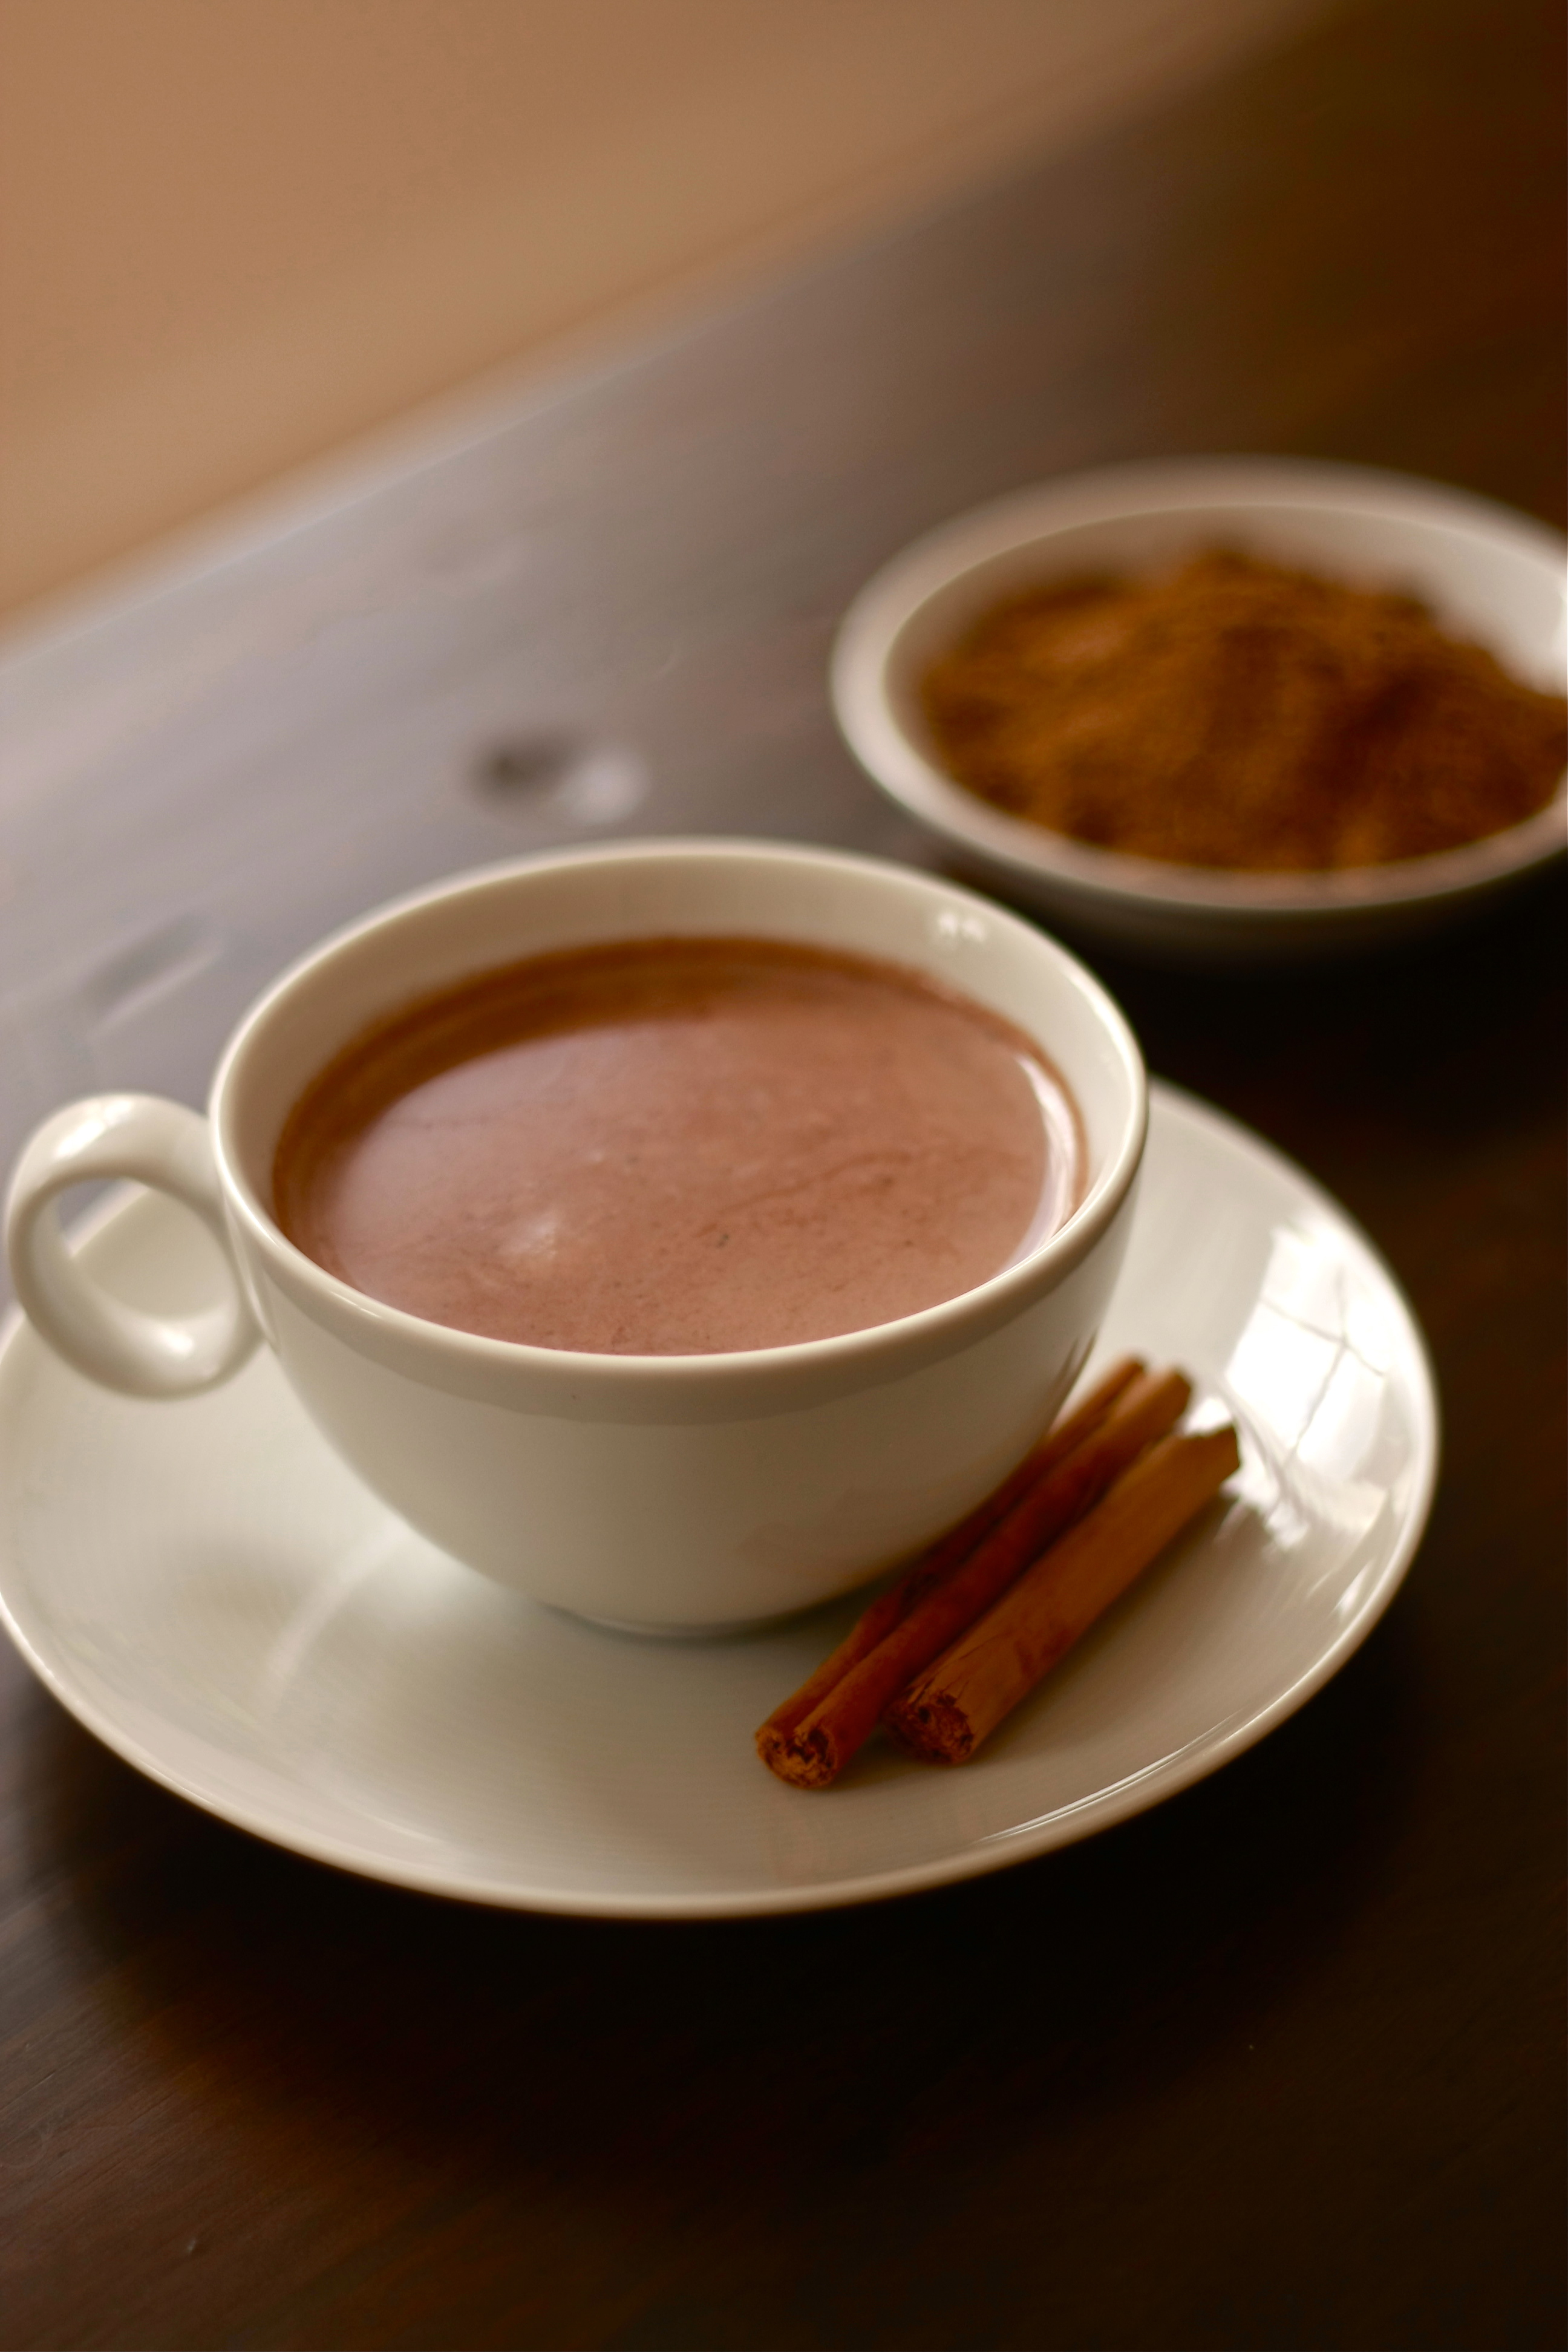 Arabic Seven Spice Hot Chocolate | Wandering Spice